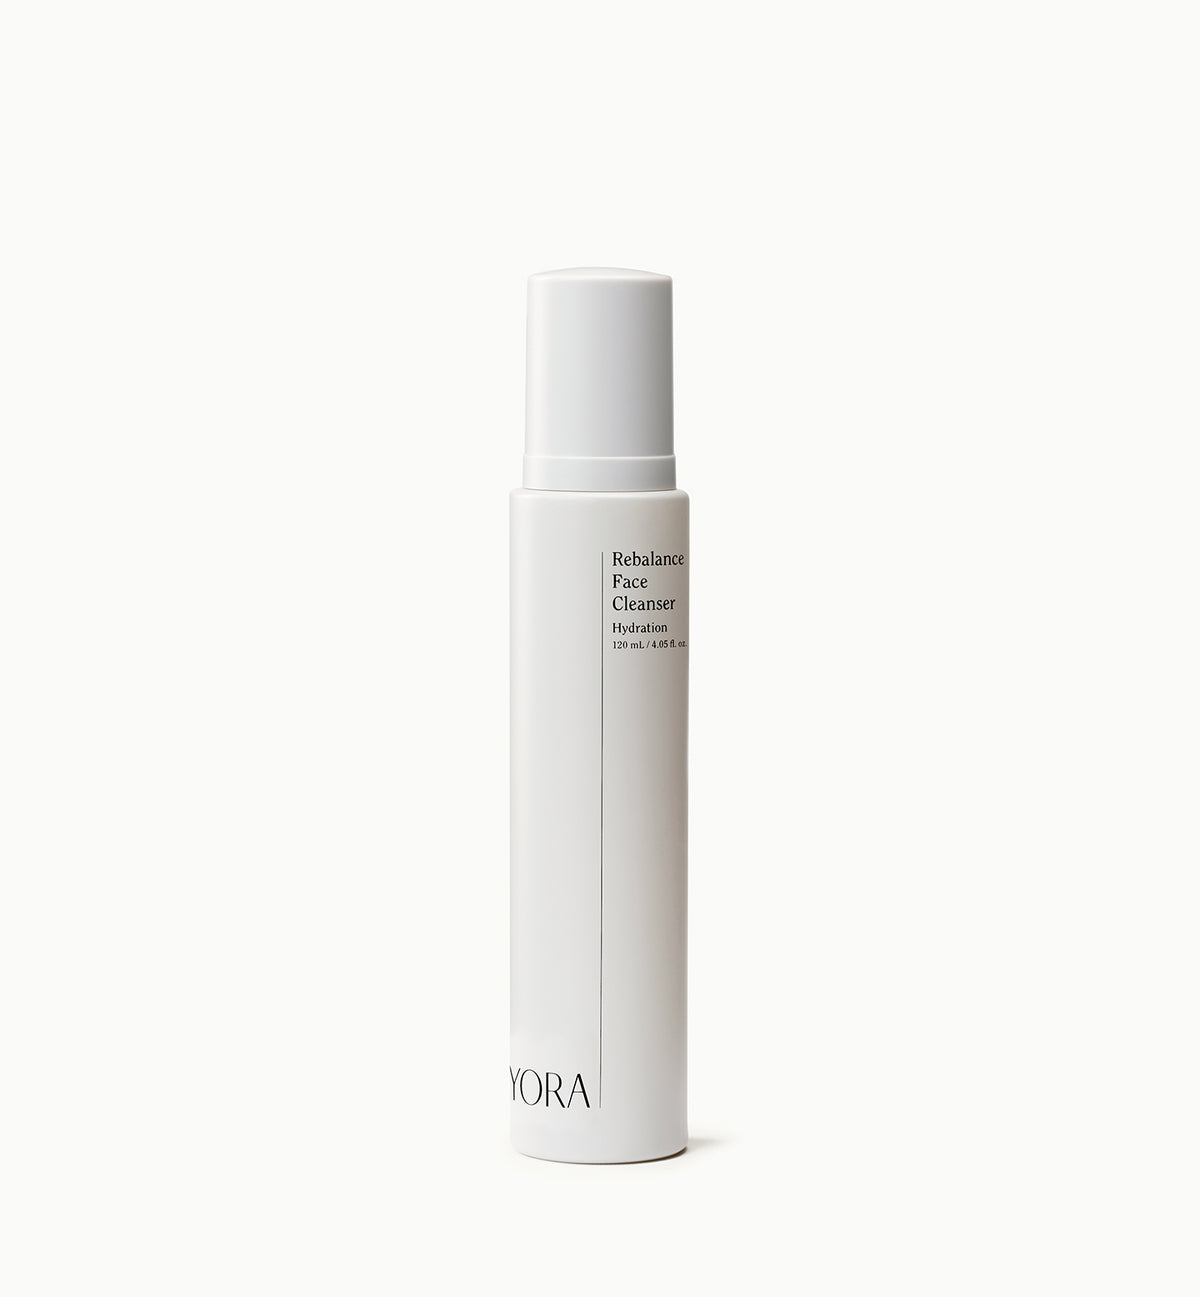 Rebalance Face Cleanser